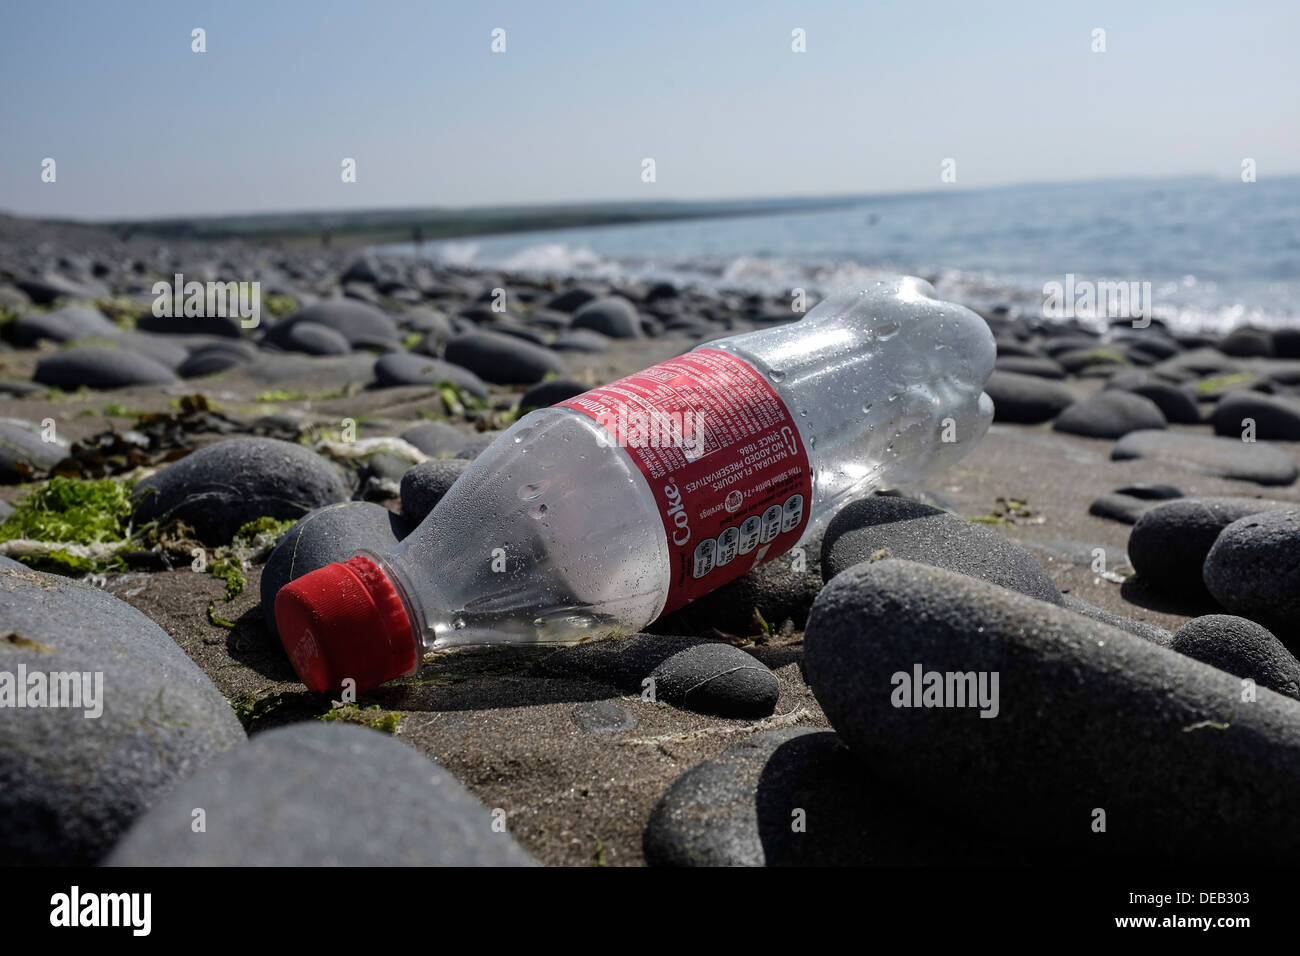 A discarded coca-cola coke soft drink  plastic bottle on Llanrhystud beach, Cardigan Bay coast, Ceredigion, west wales, uk - Stock Image